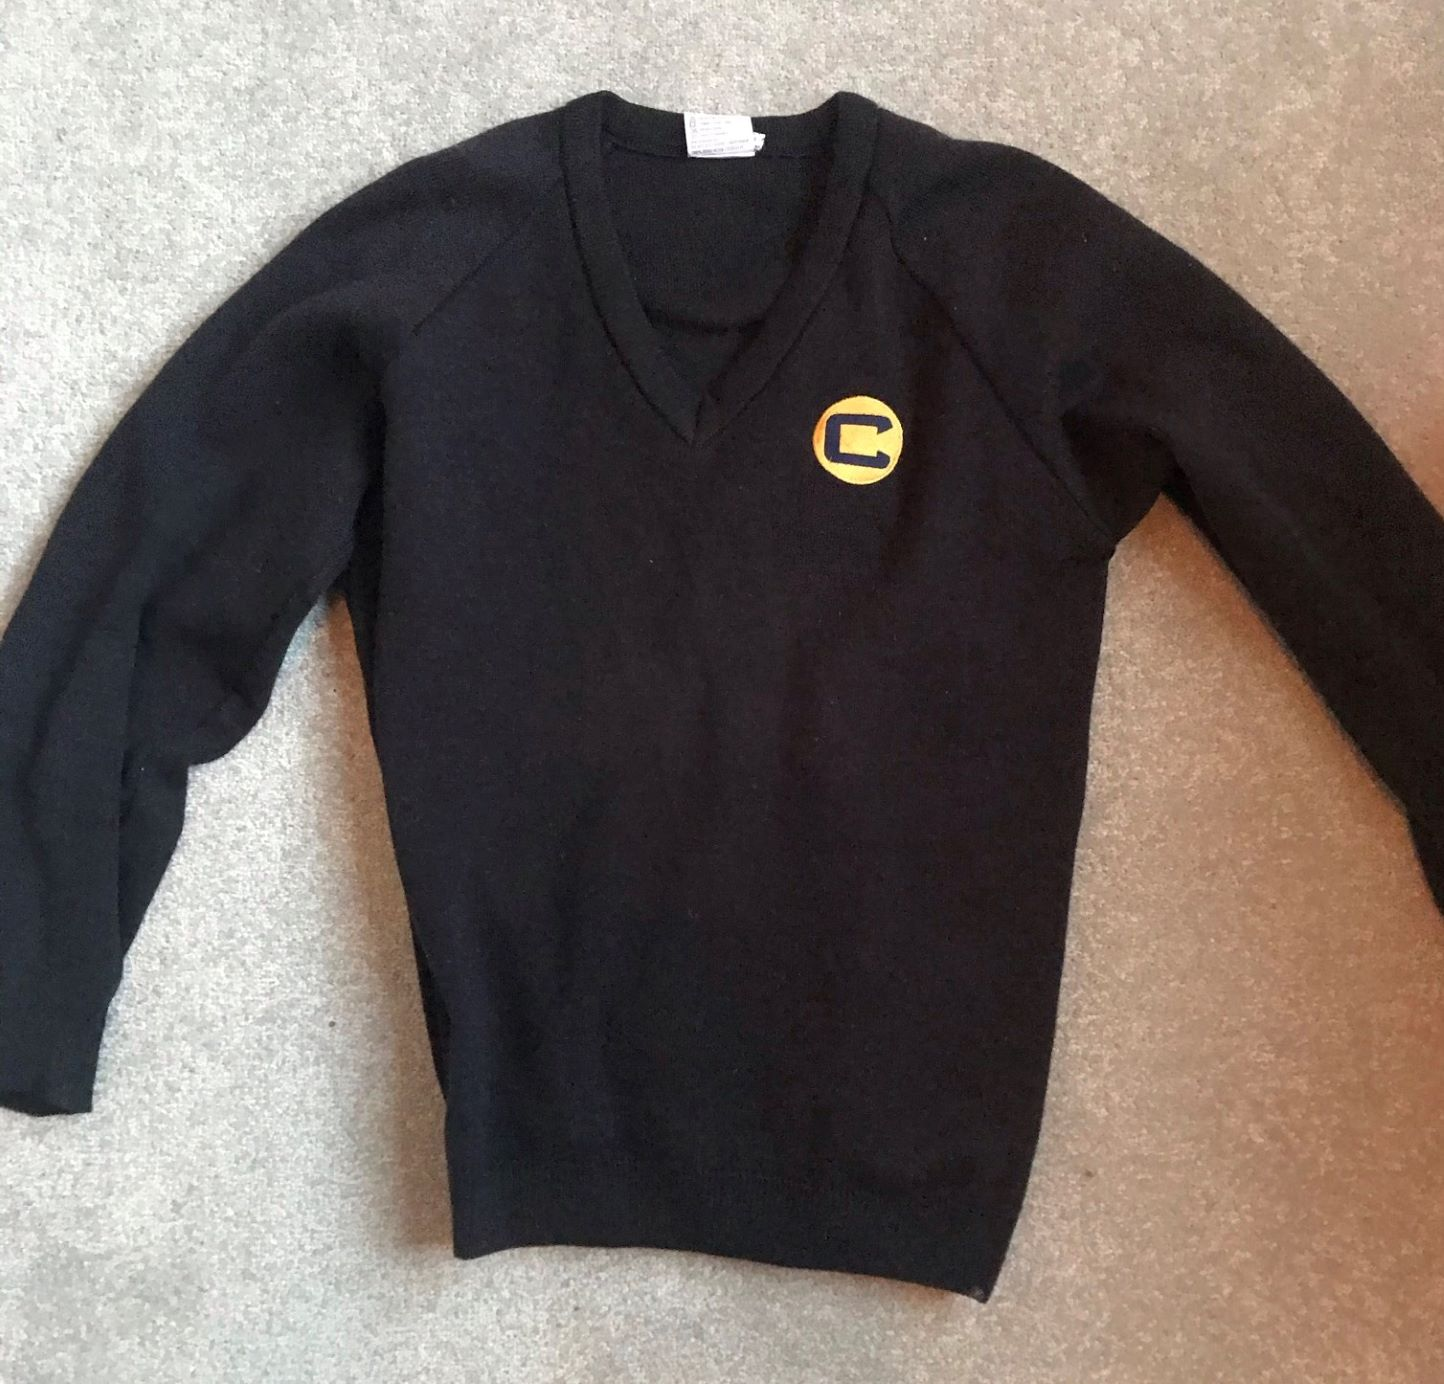 Charter North Jumper: Size 38 Marked